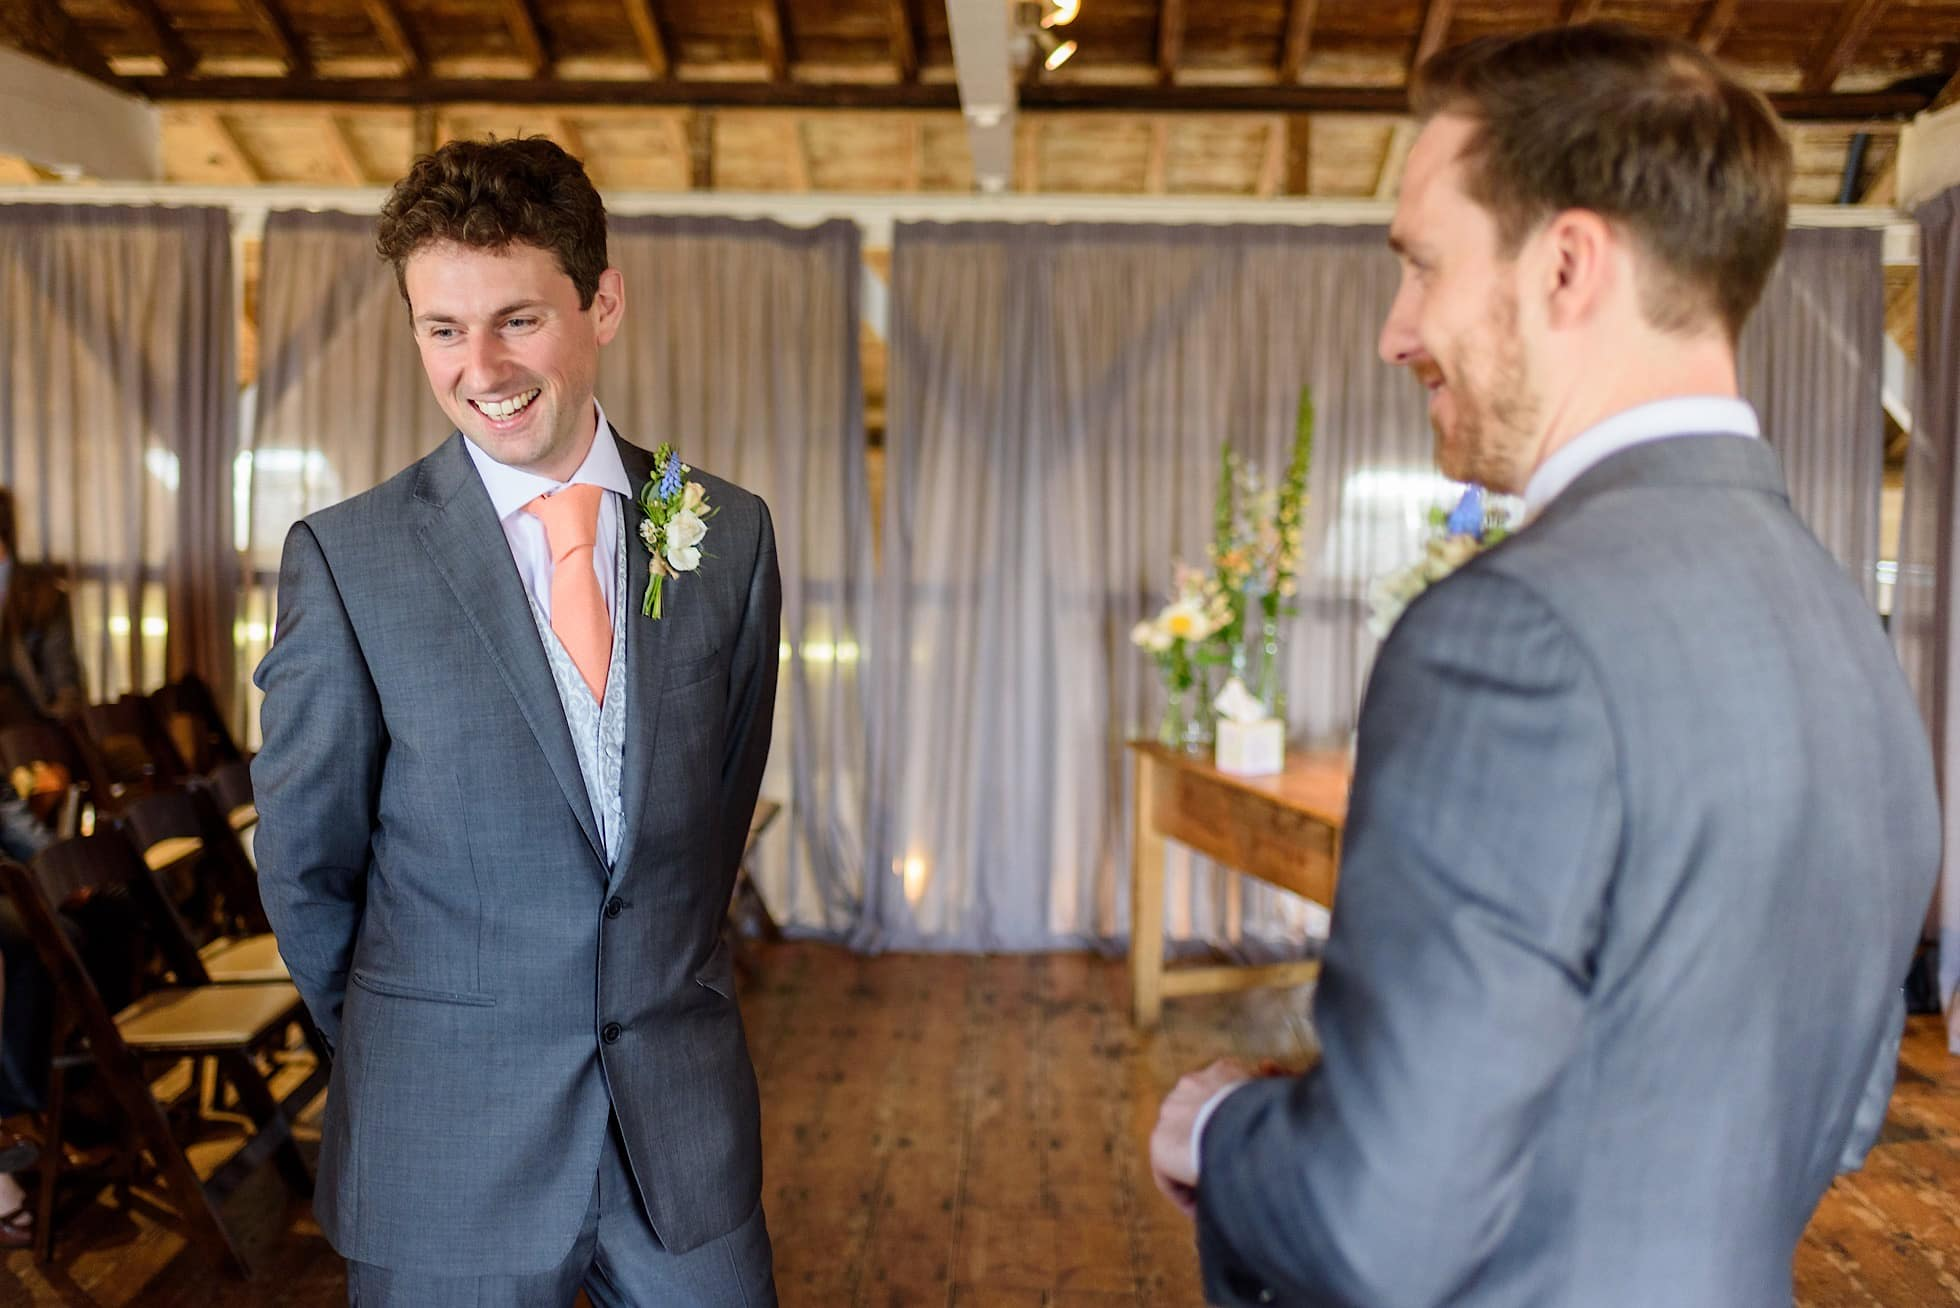 Groom and best man having a laugh